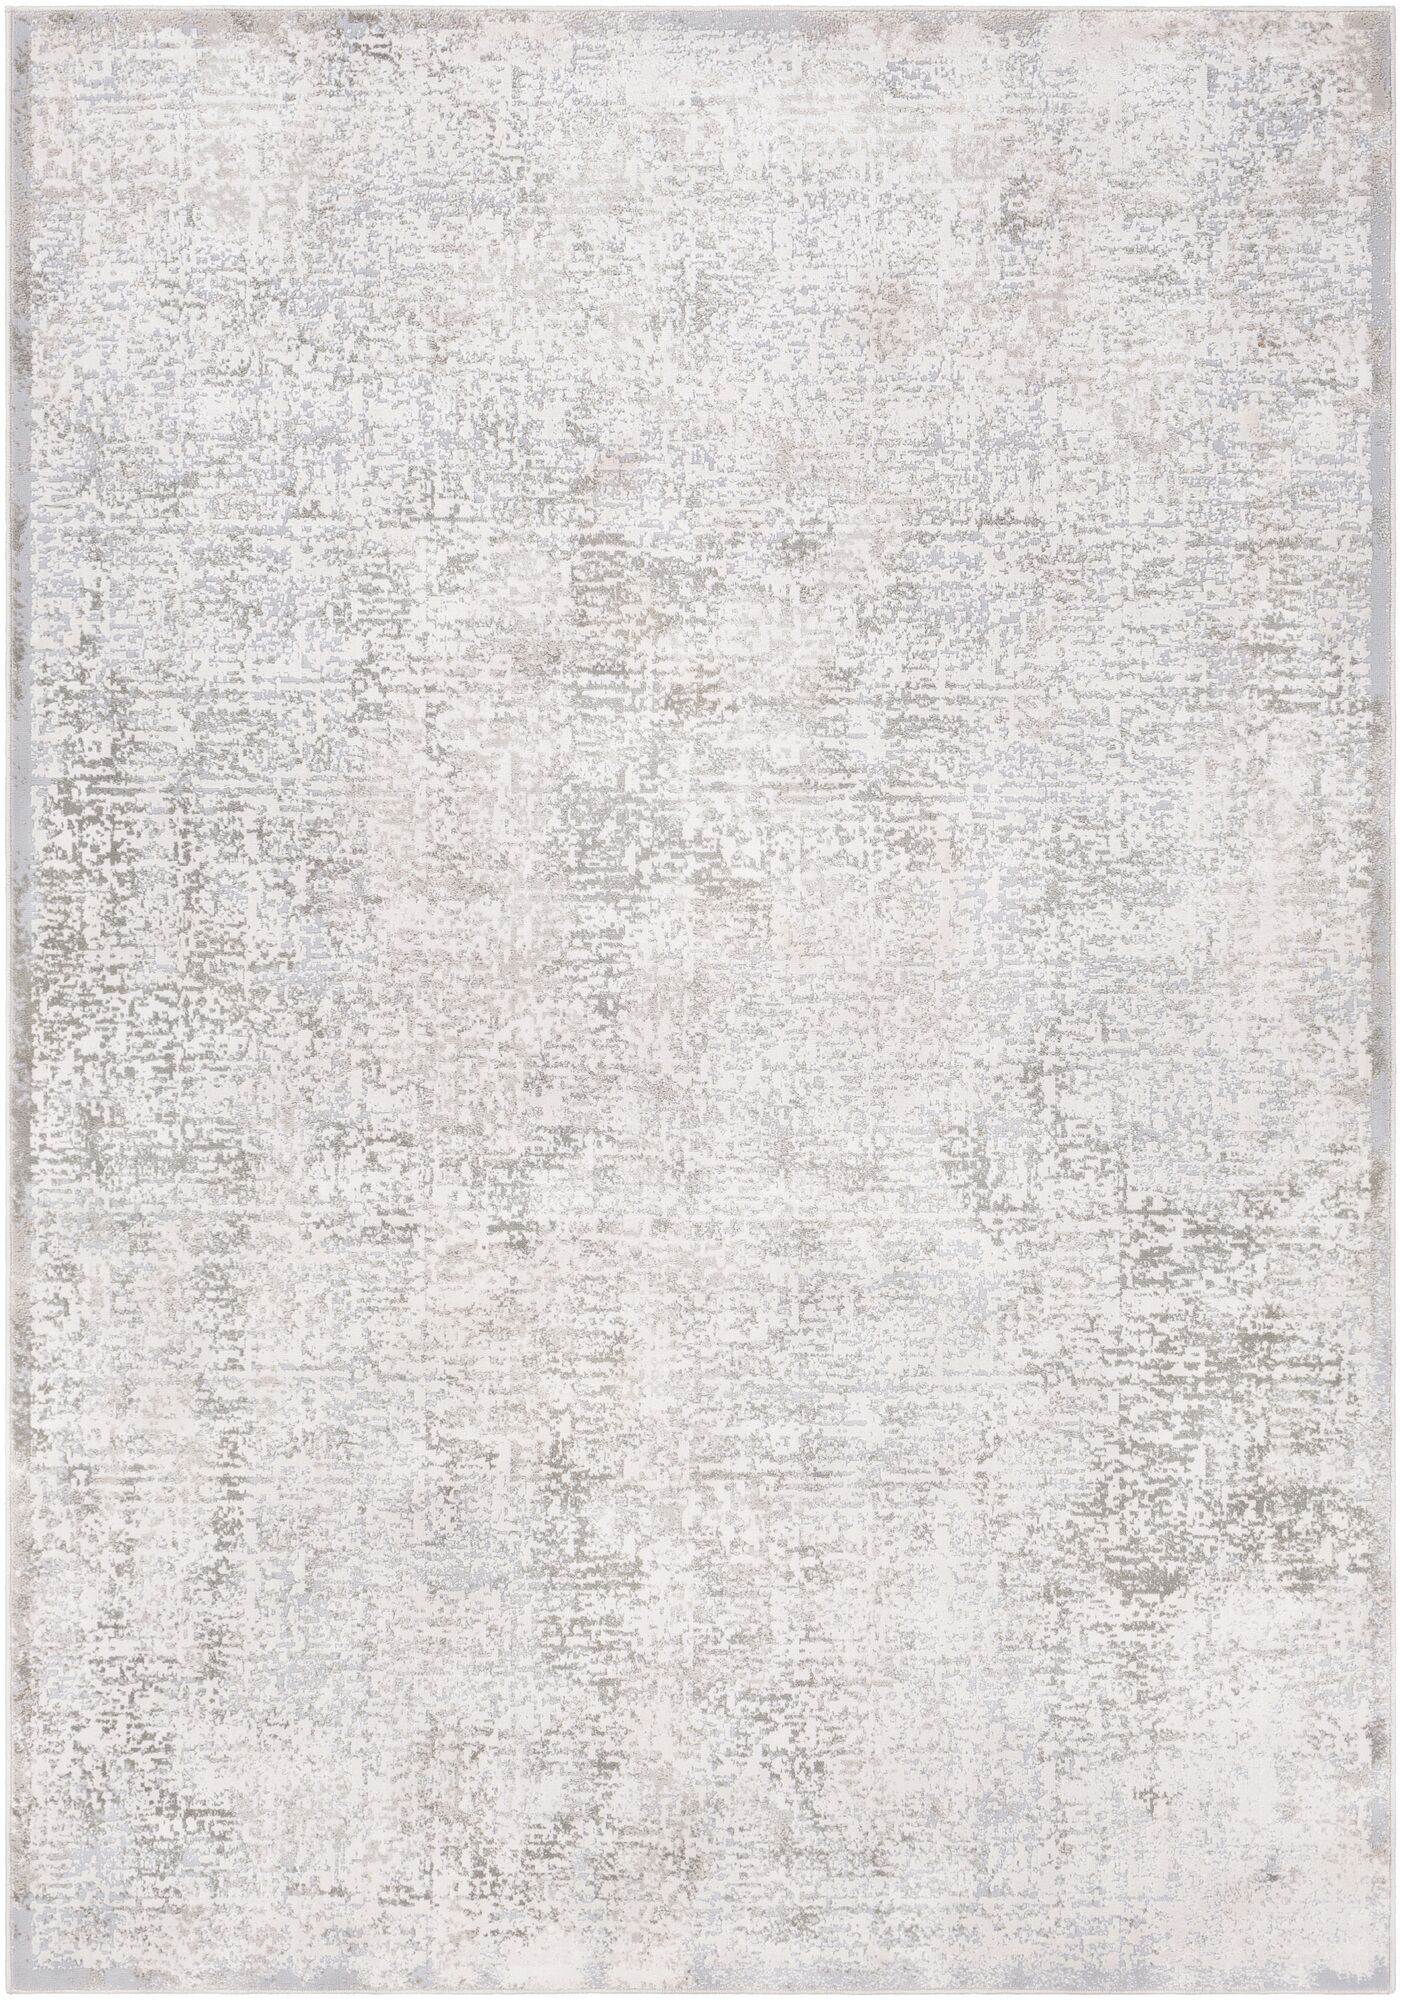 Oceanview Distressed Abstract Light Gray/Gray Area Rug Rug Size: Rectangle 5'3